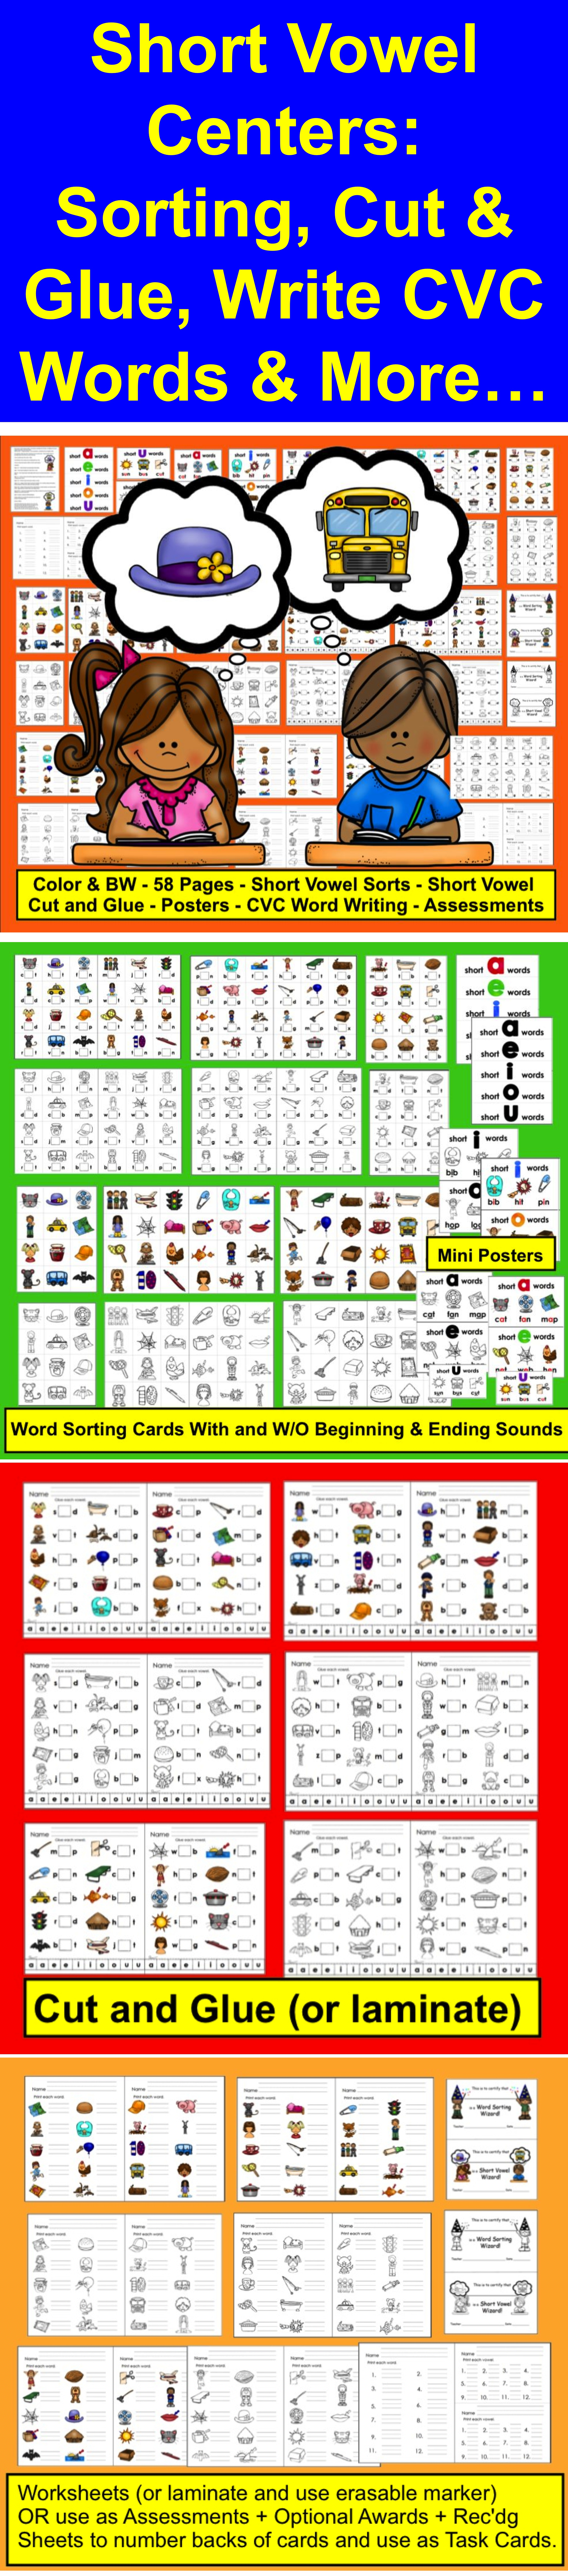 Short Vowels Word Sorting Activities Posters Cut And Glue Write The Cvc Word 60